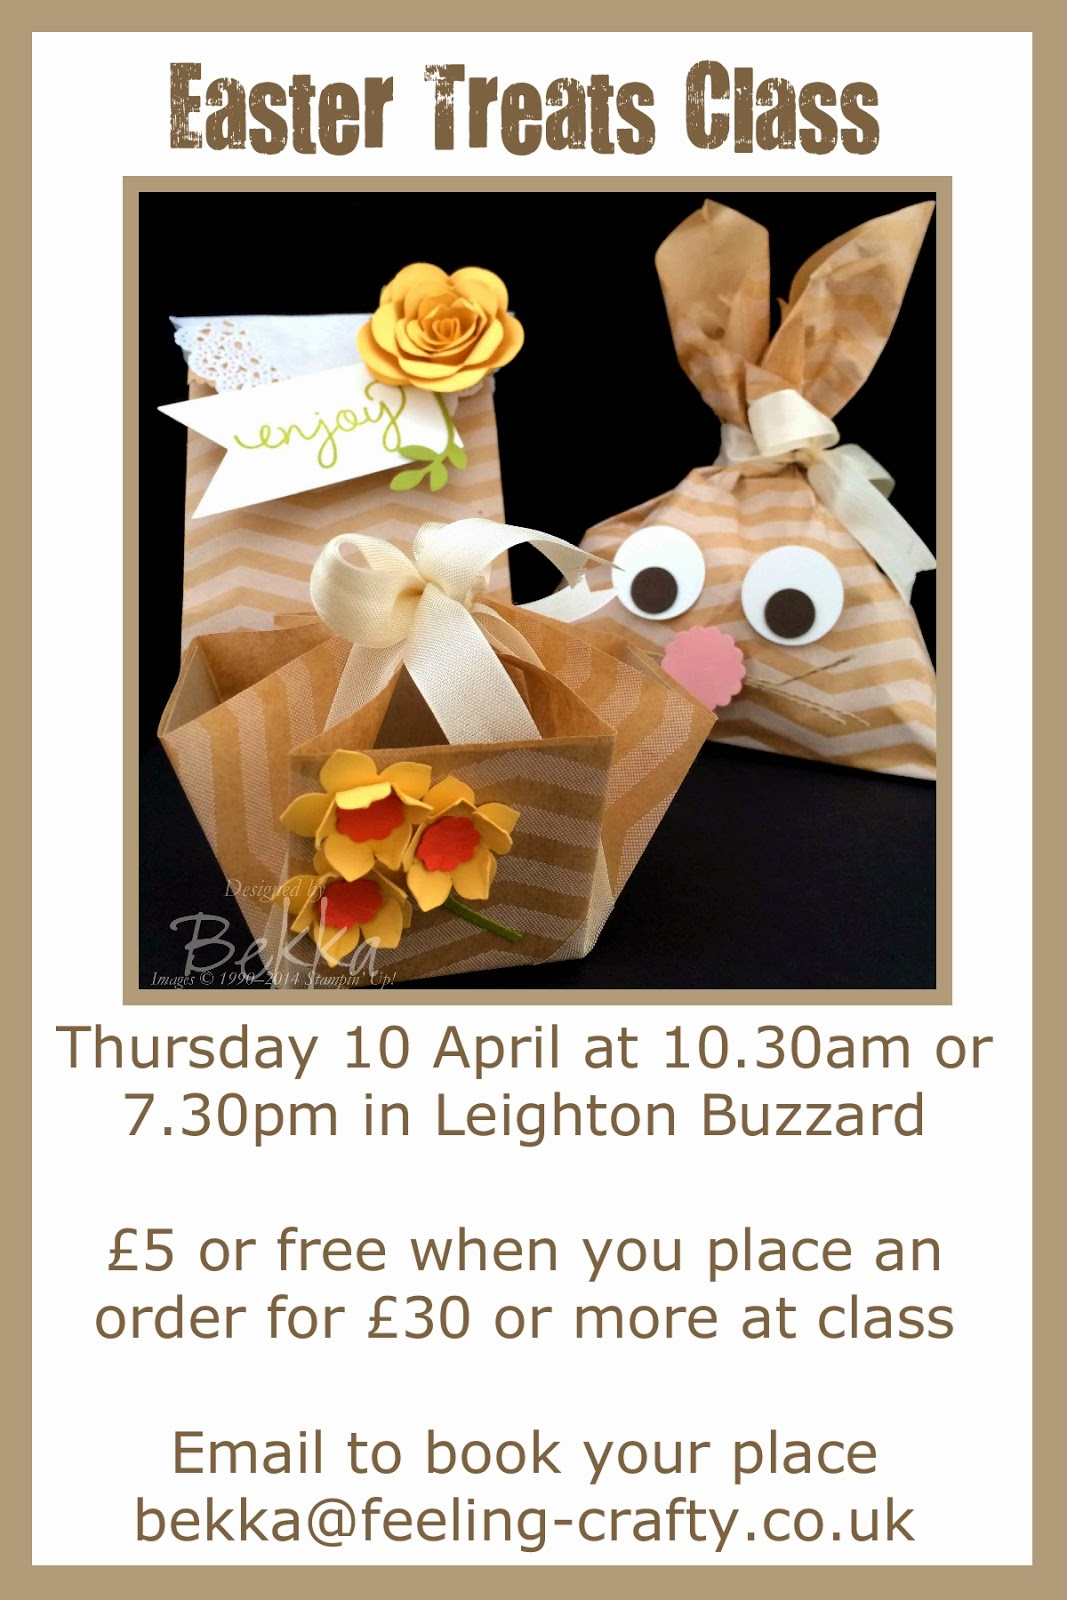 This class looks cute - lovely Easter Treat Packaging! You can book now